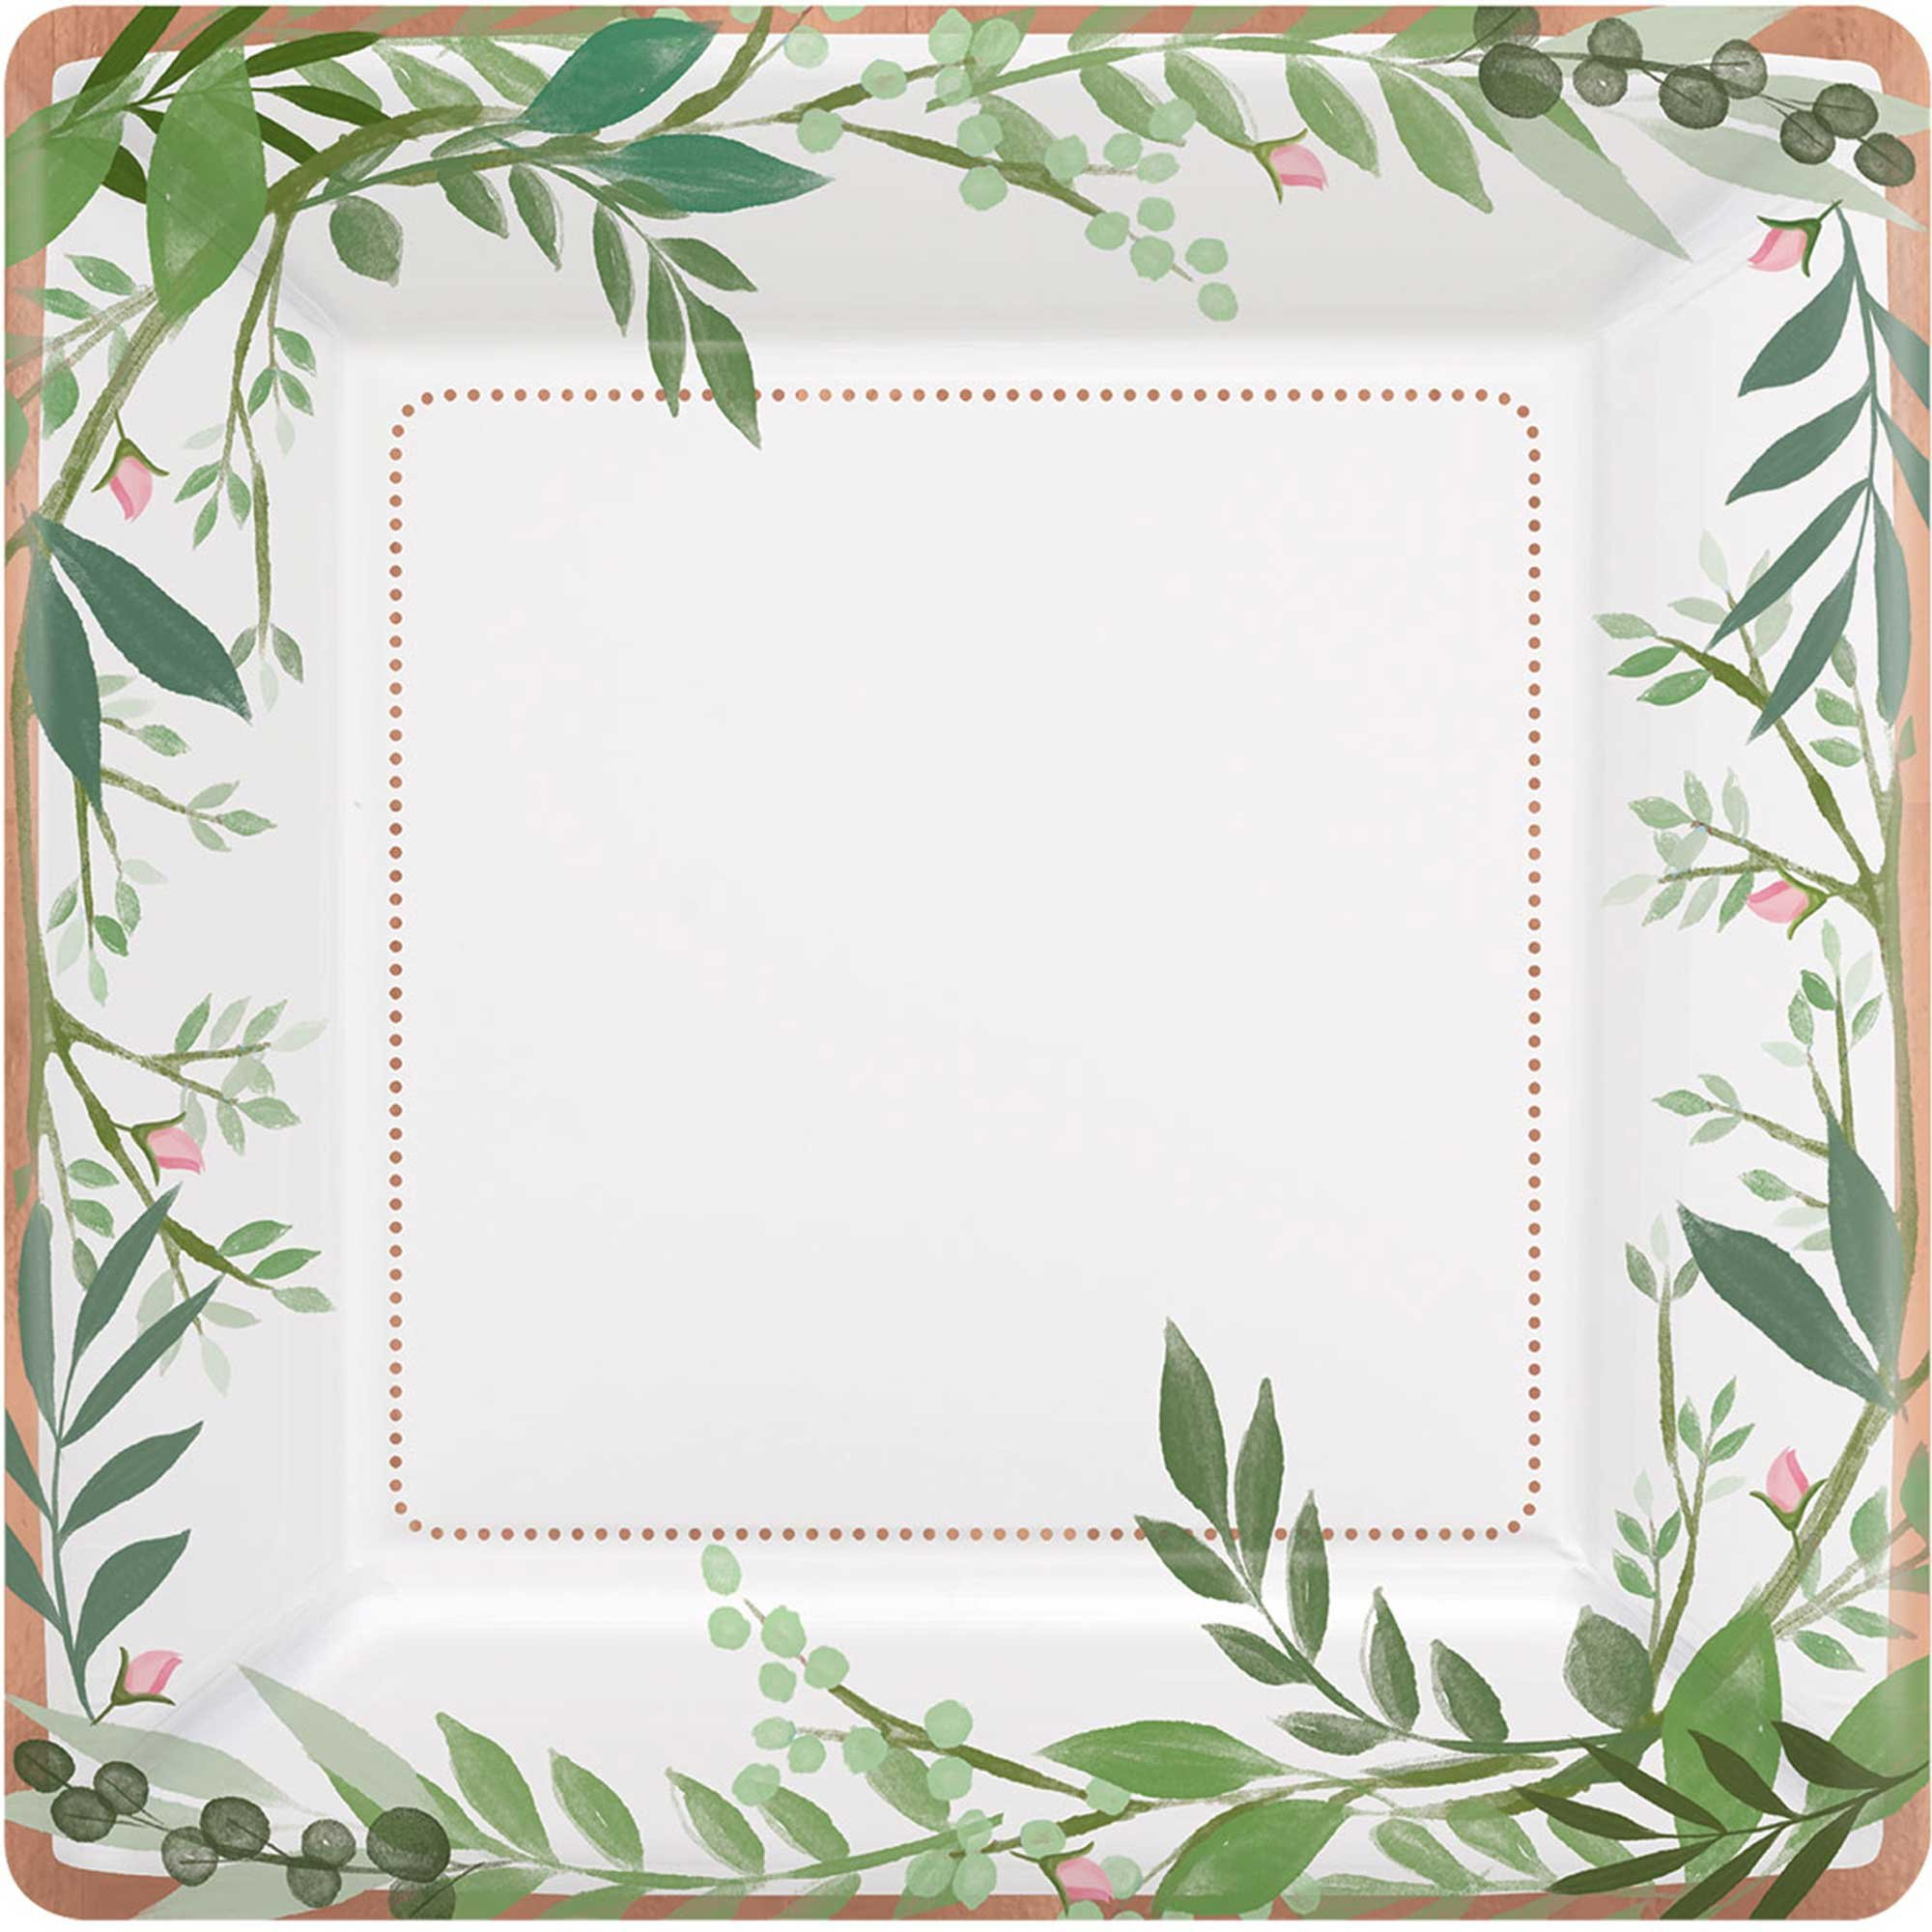 Love and Leaves 17cm Square Metallic Plates